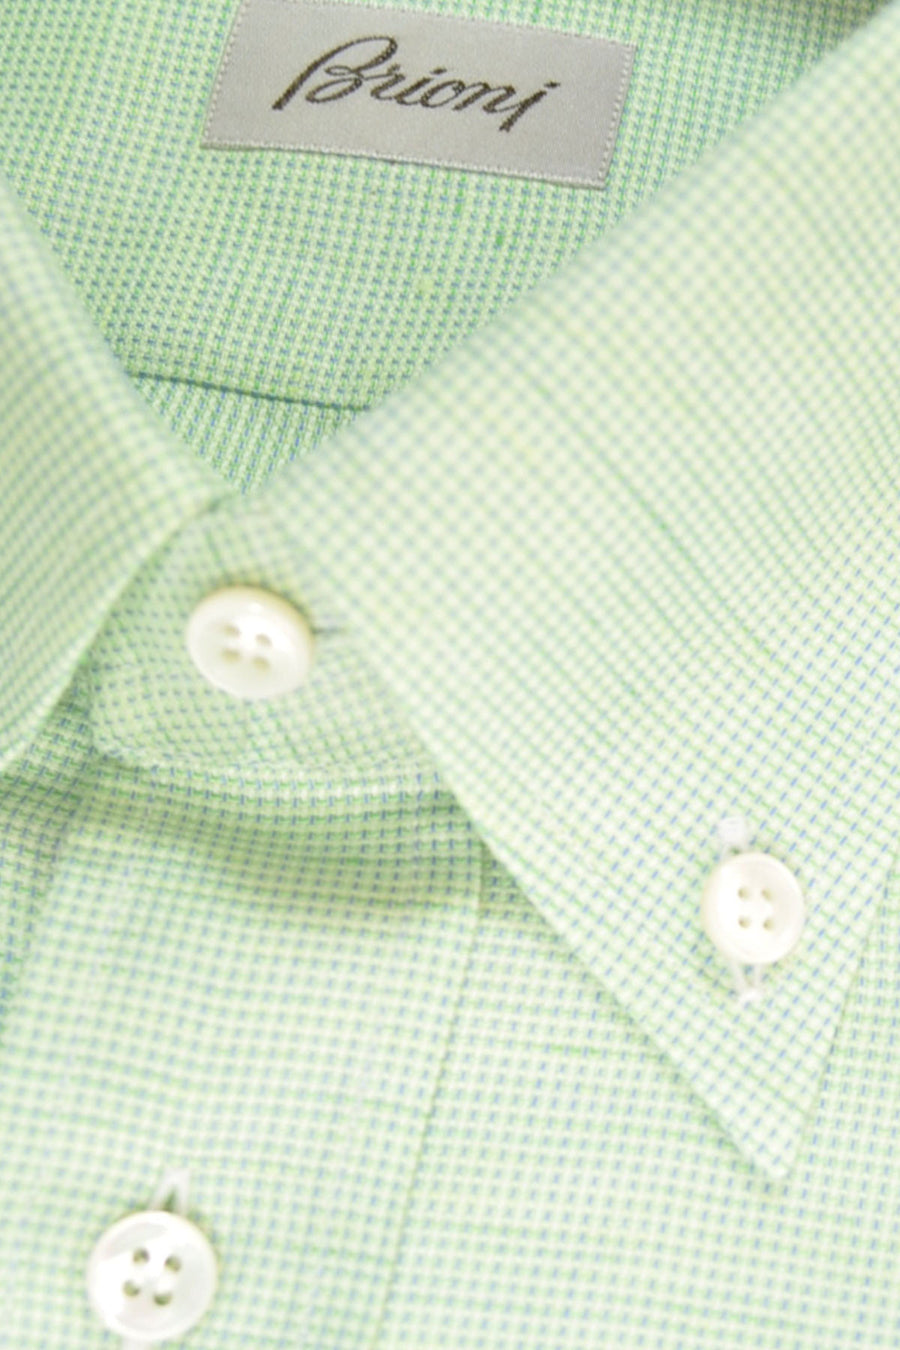 Brioni Shirt Lime-Green Navy Button Down Shirt S - SALE